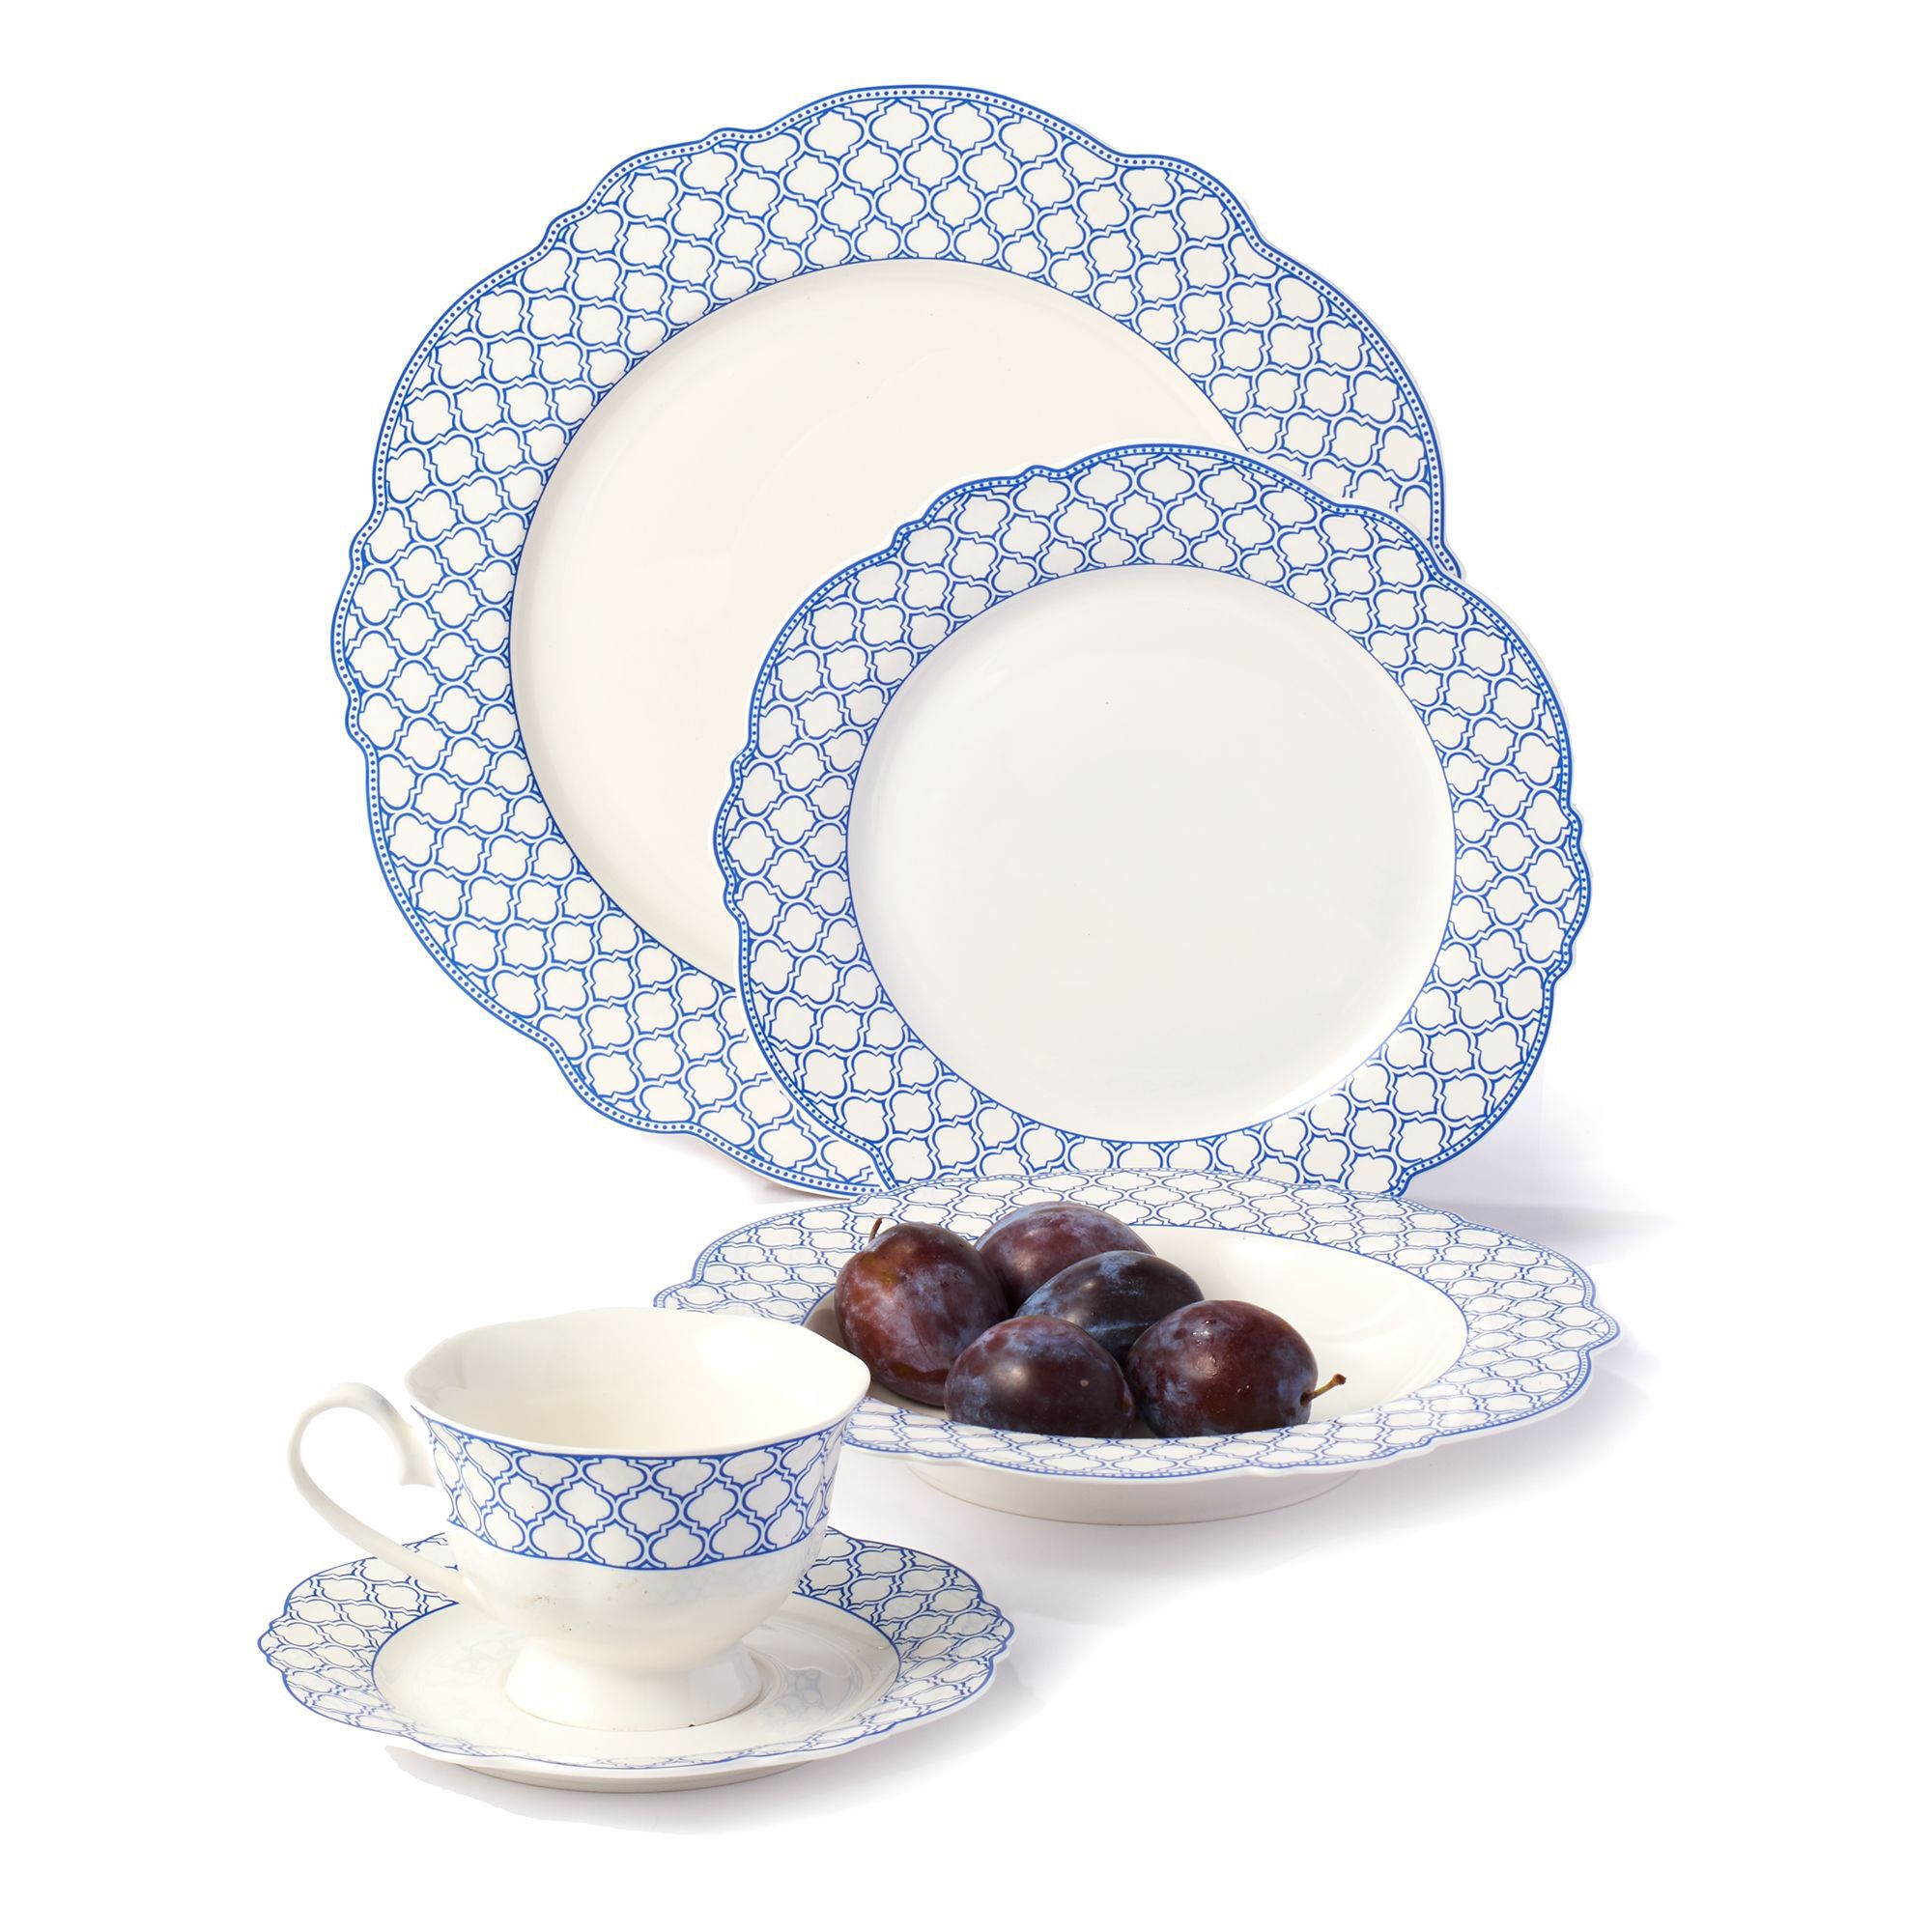 Godinger u0026quot;Bristol Blueu0026quot; Scalloped Bone China Dinnerware  default  sc 1 st  Ross-Simons & Godinger